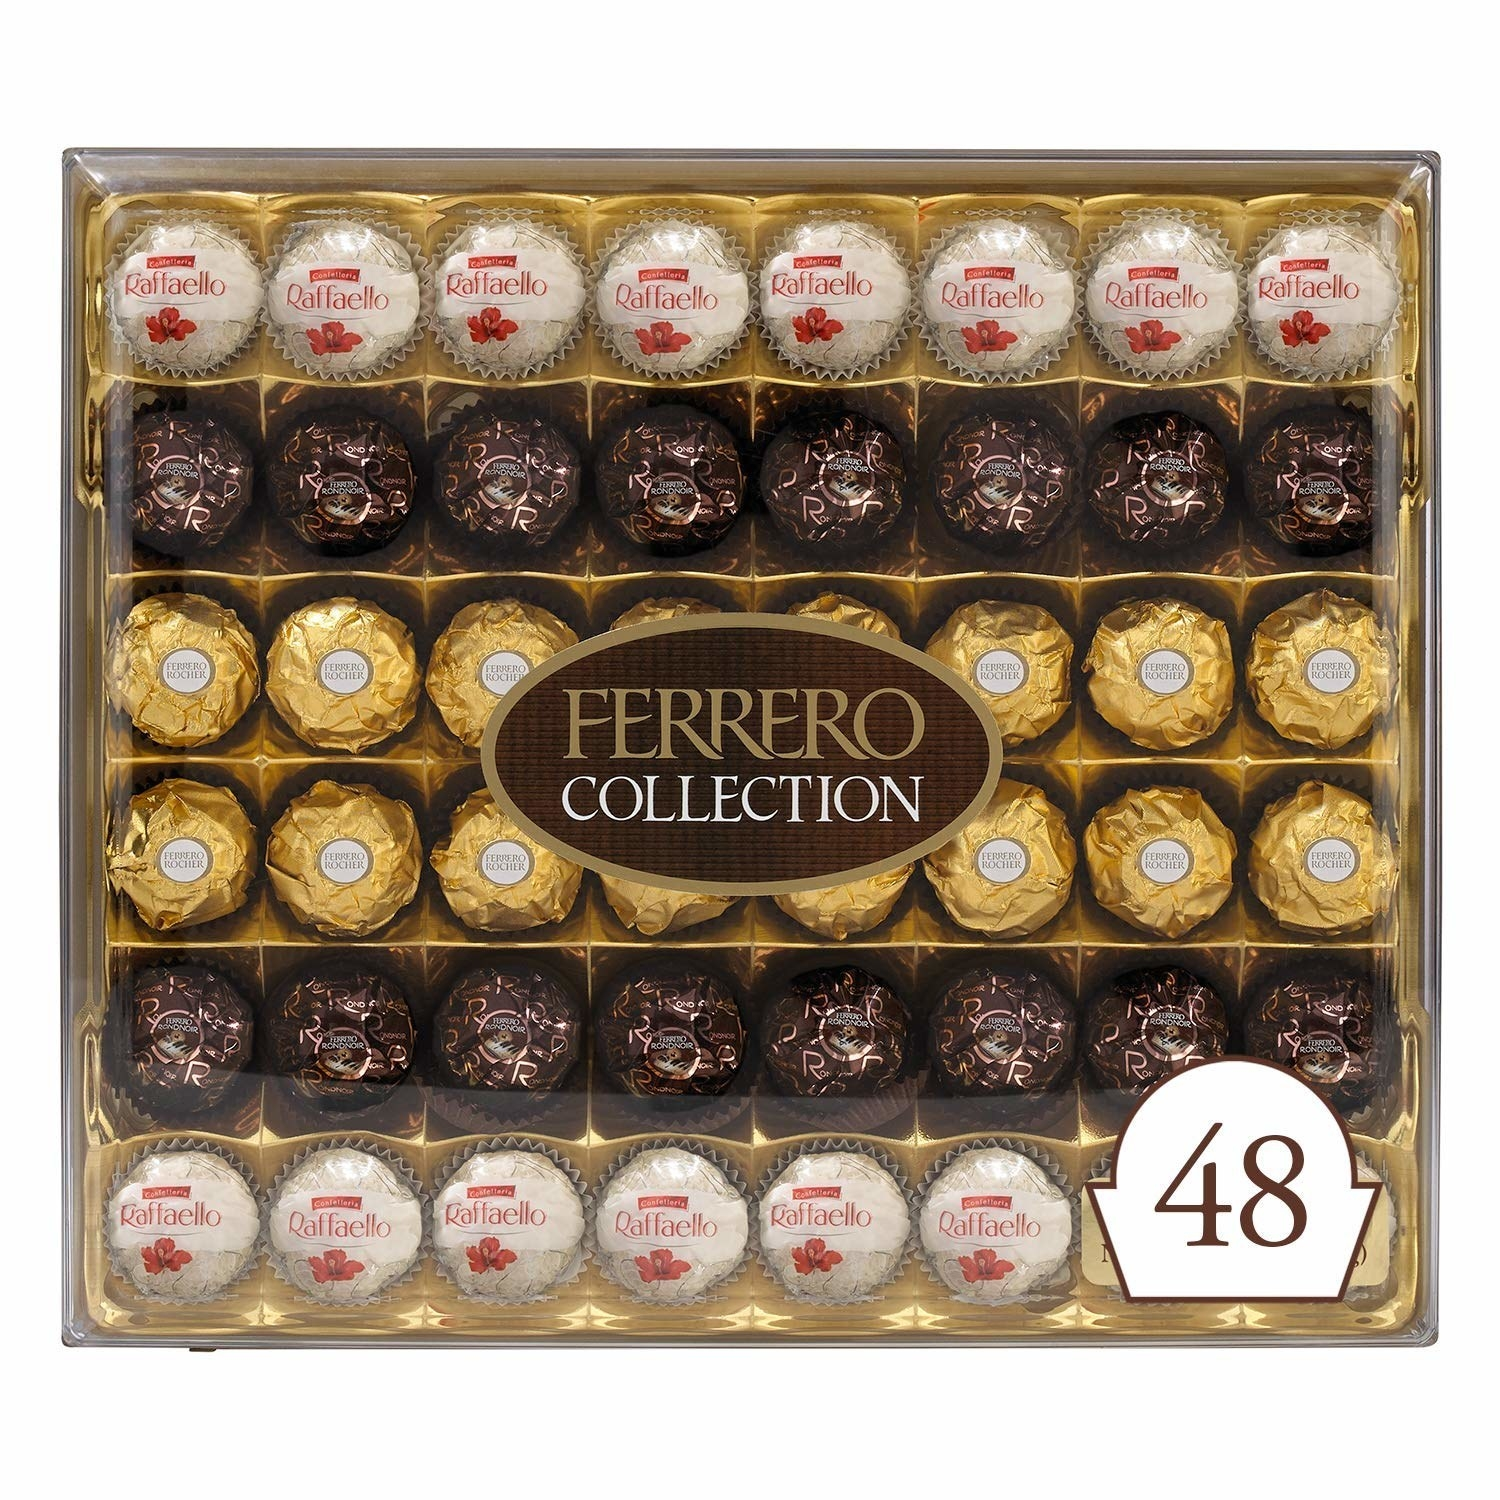 The 48-piece Ferrero Rocher Collection variety pack